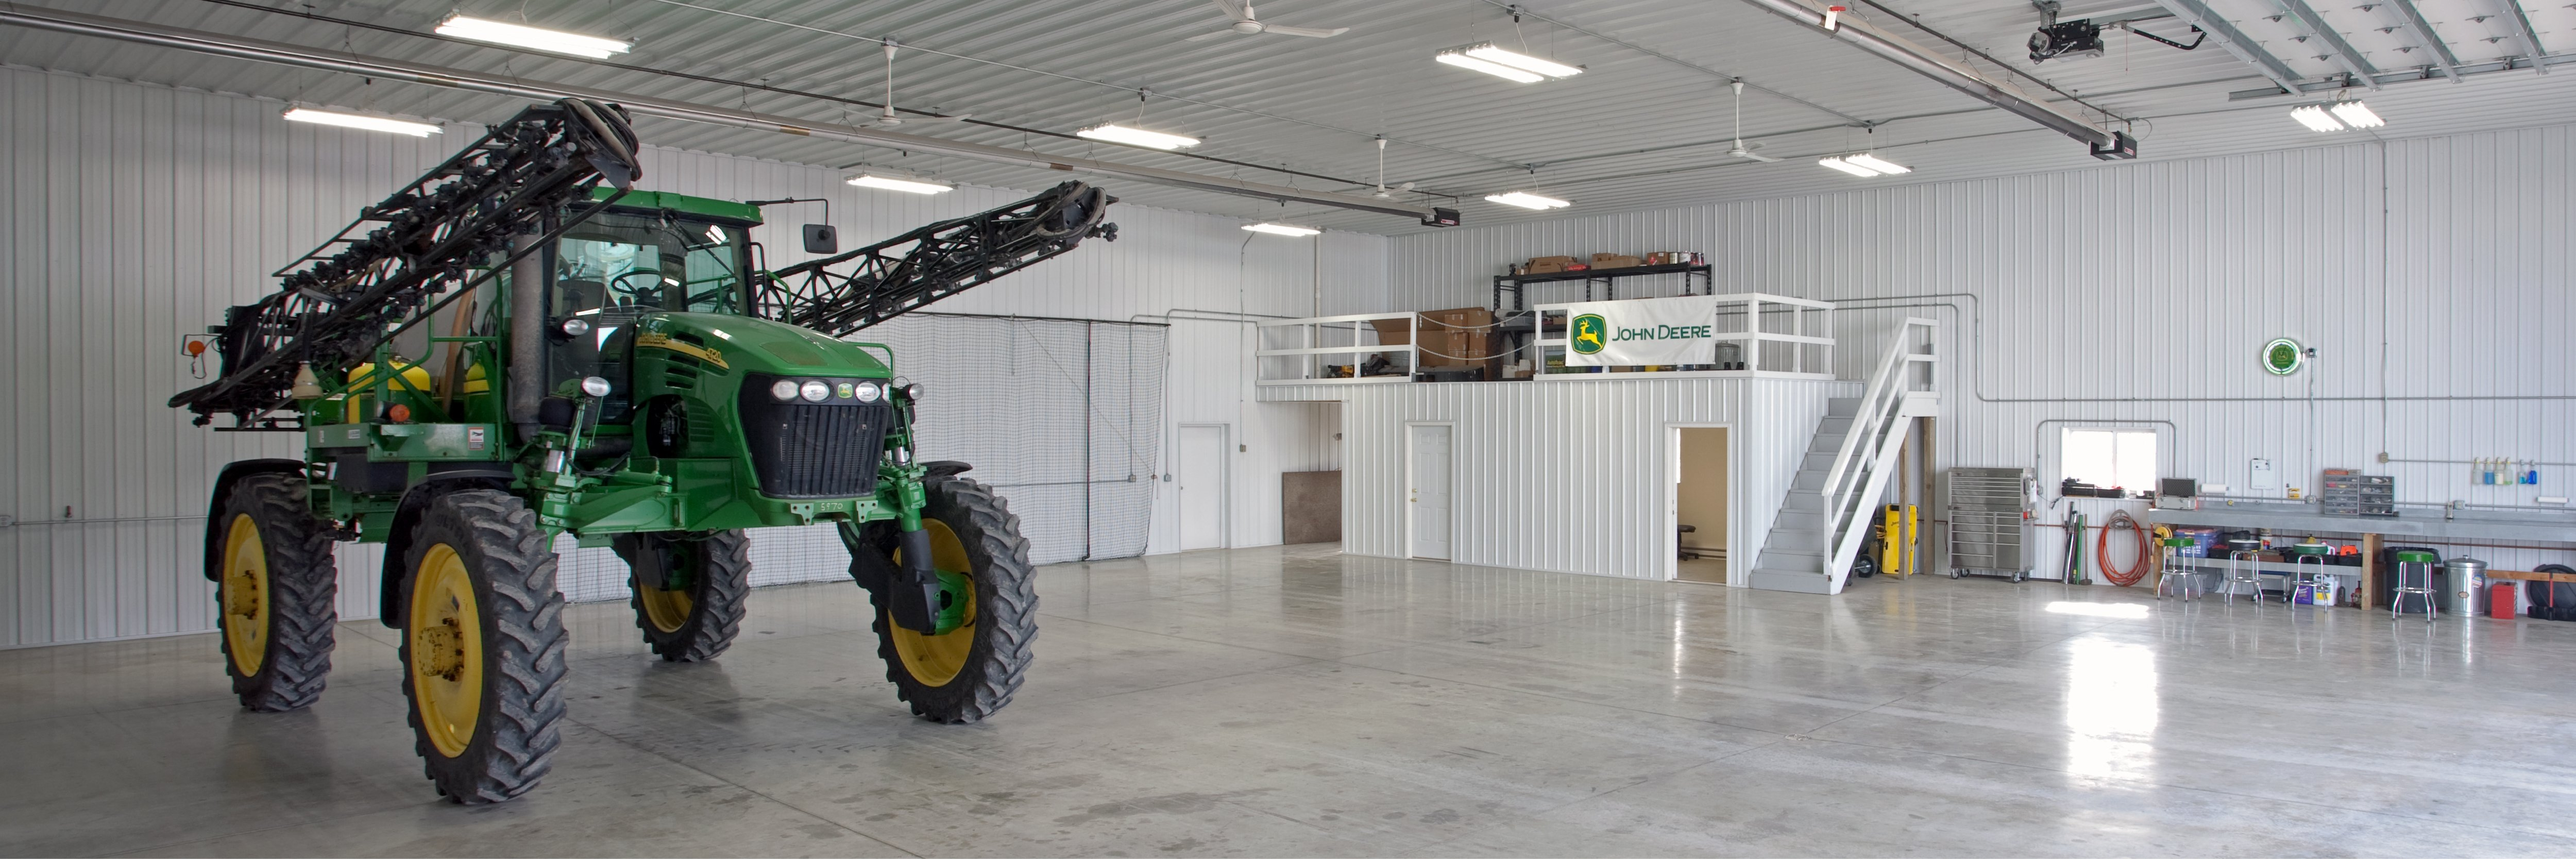 What Are My Options for Pole Barn Flooring?